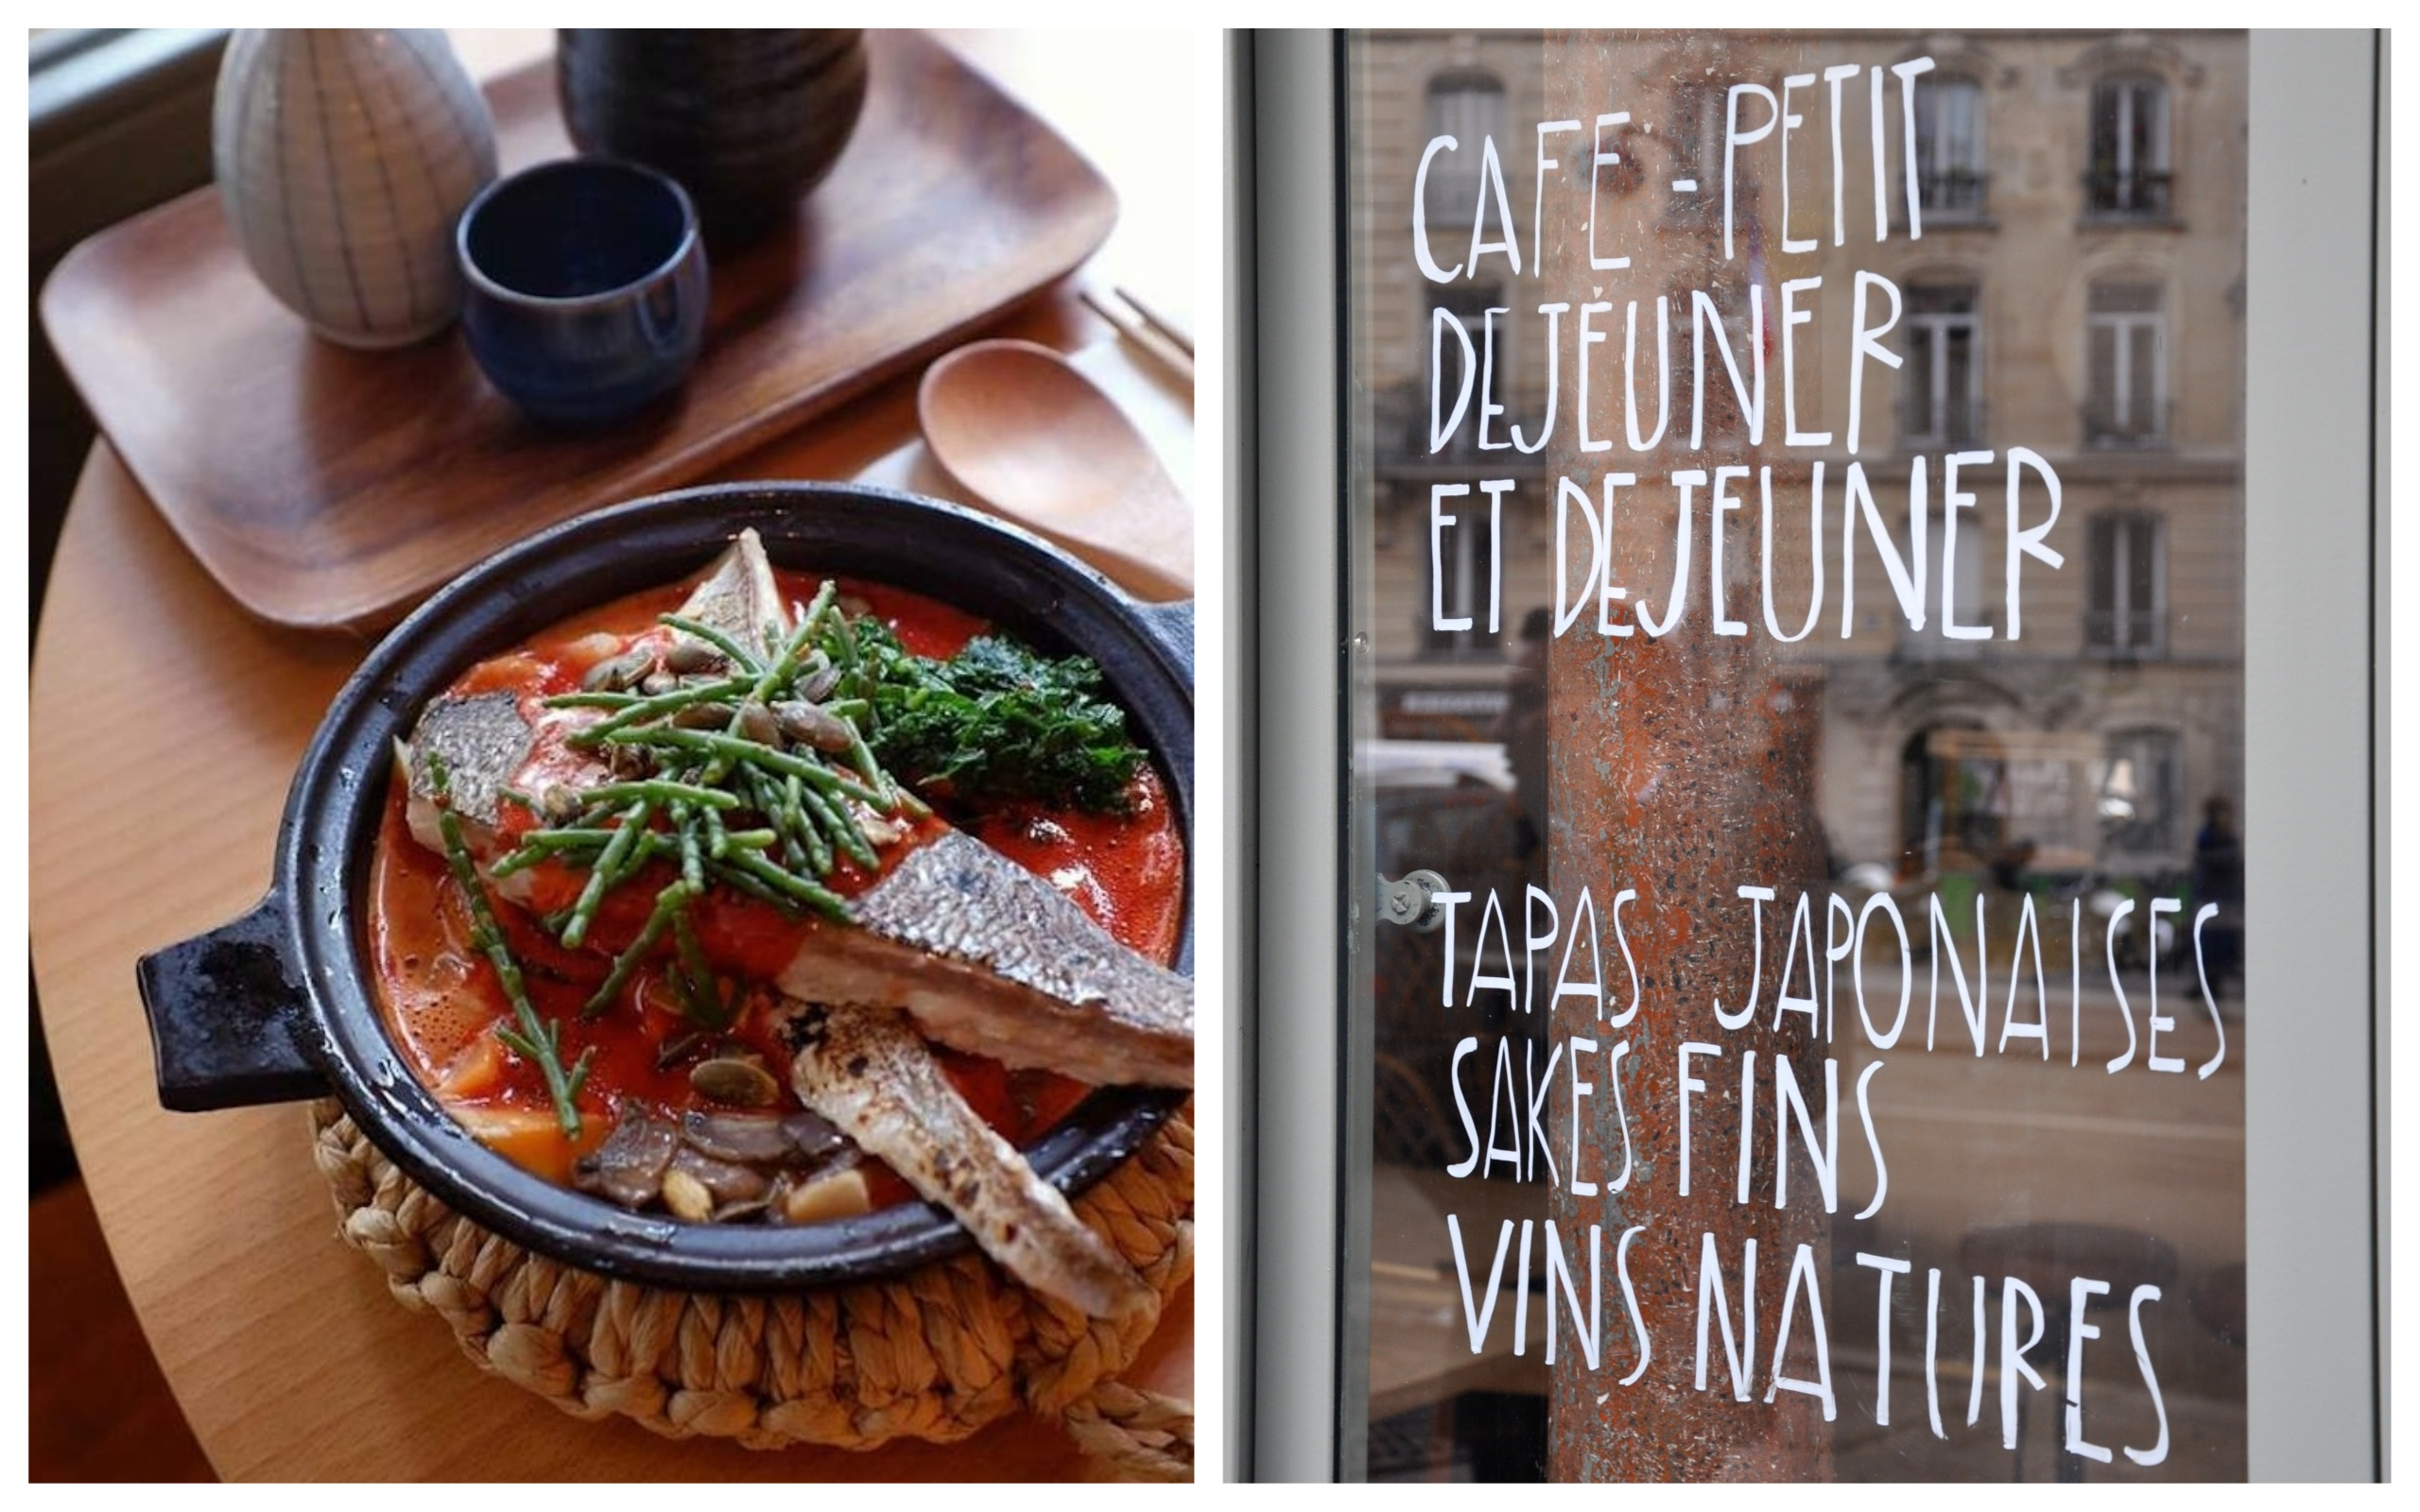 New restaurant in Montmartre, Coutume Izakaya serves delicious Japanese tapas (left) as well as breakfast, as the handwritten sign says on the window (right).